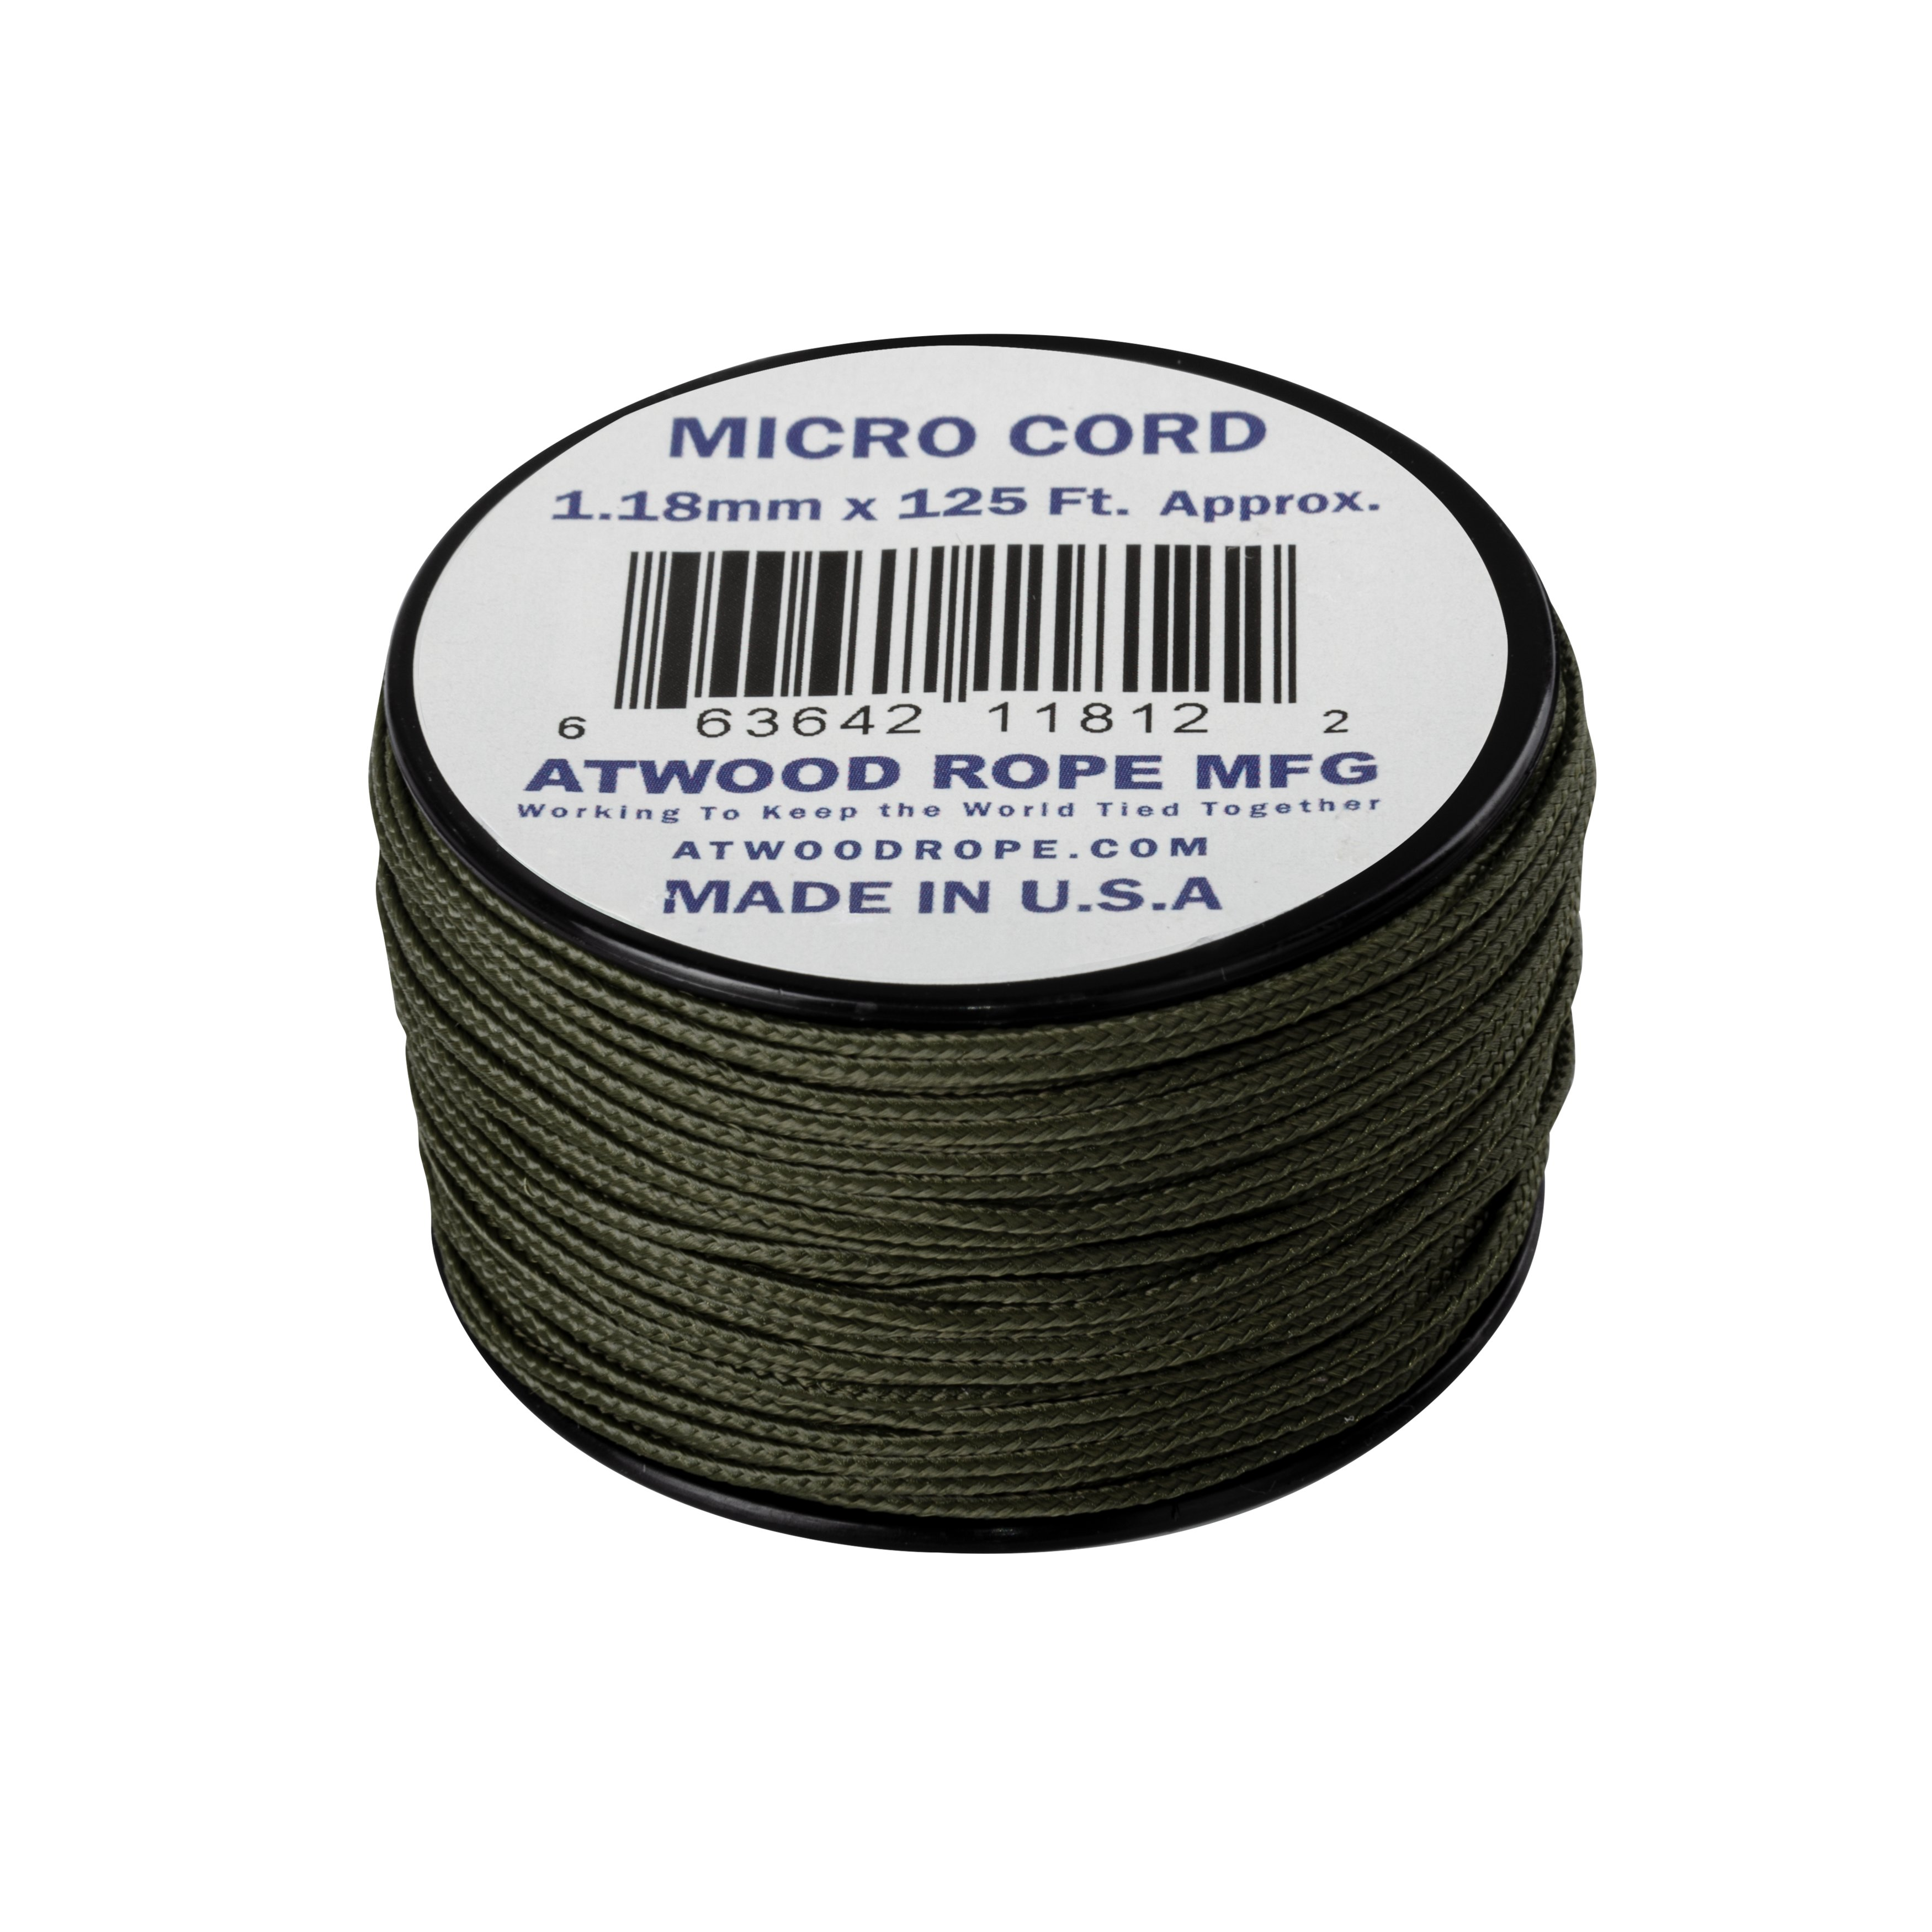 Made in the USA Hunter Green Micro Cord 1.18mm 125ft Nylon Rope Spool